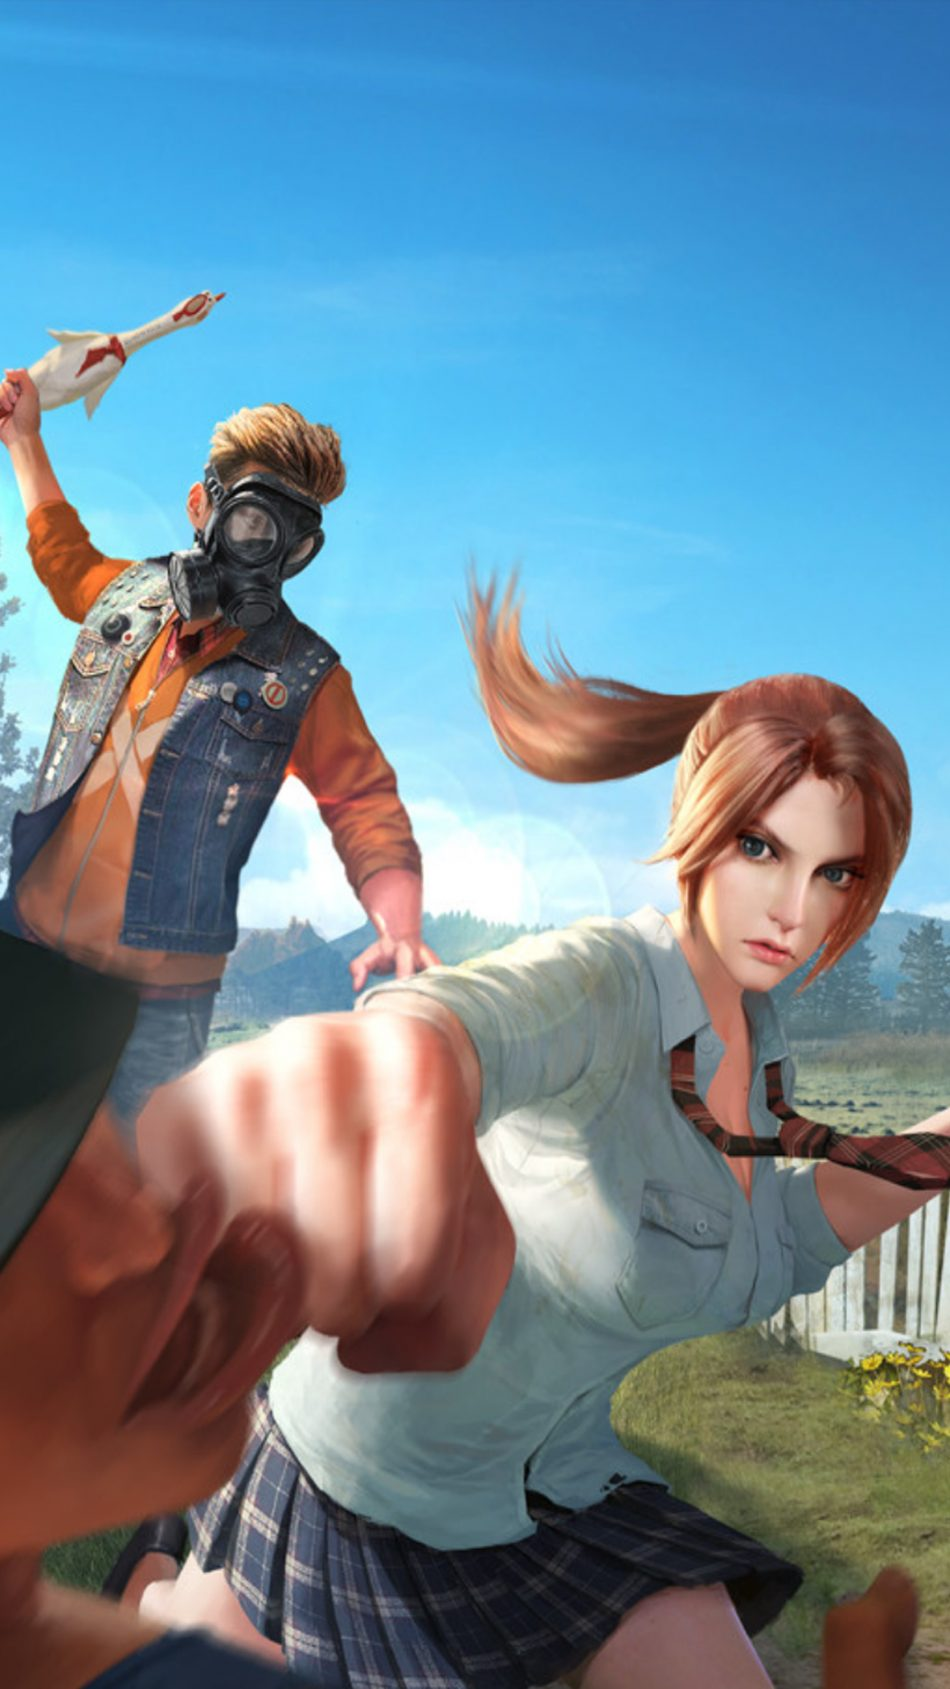 Anime Girl On Bike Wallpaper Download Rules Of Survival Video Game Free Pure 4k Ultra